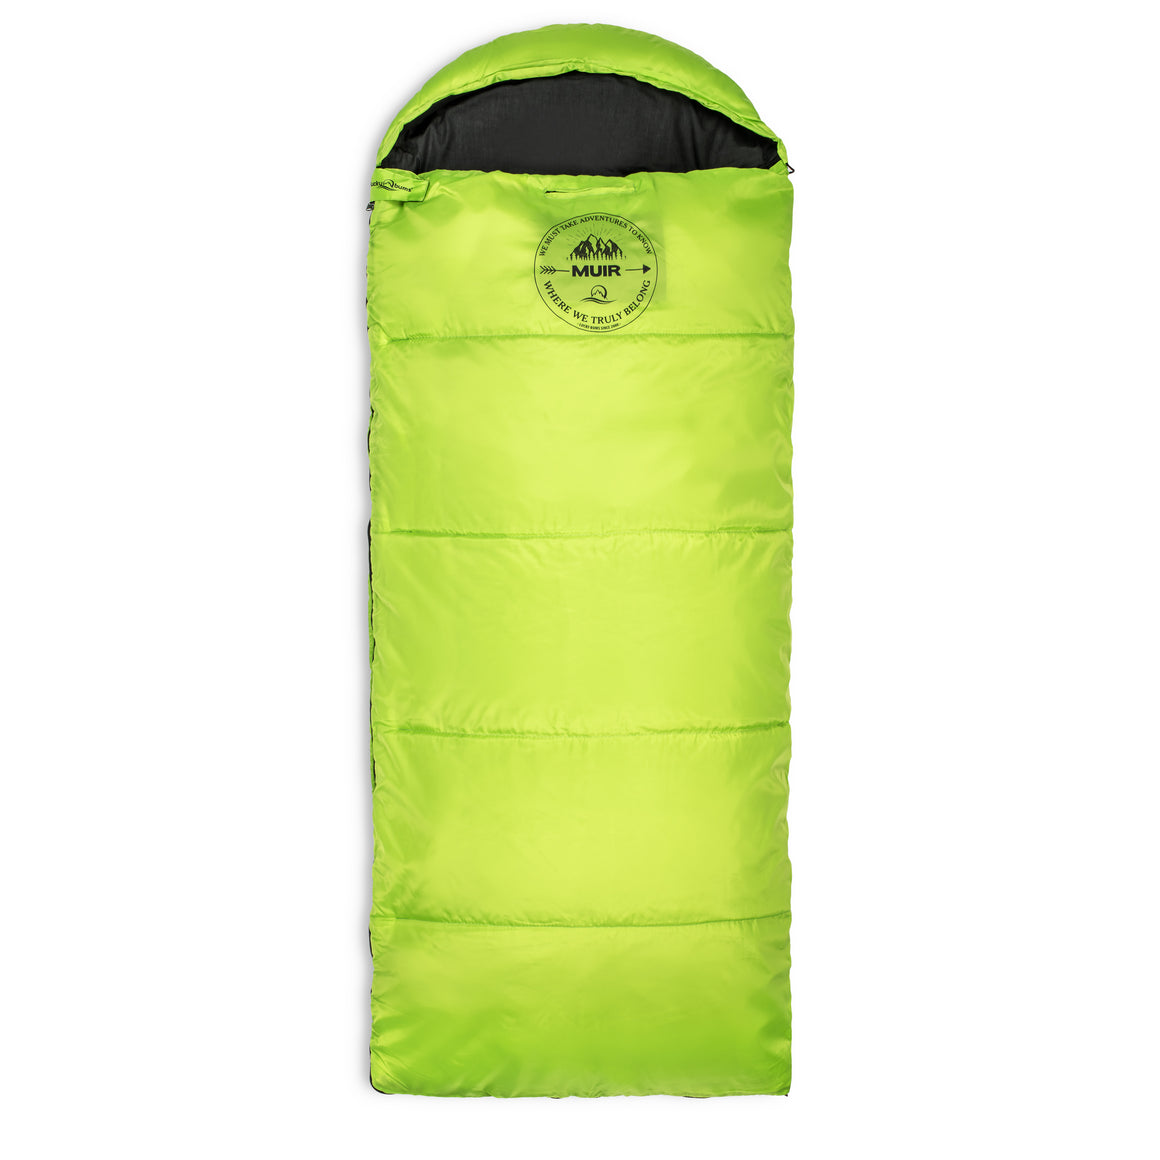 Lucky Bums Youth Muir Sleeping Bag 40°F/5°C with Compressing Carry Bag